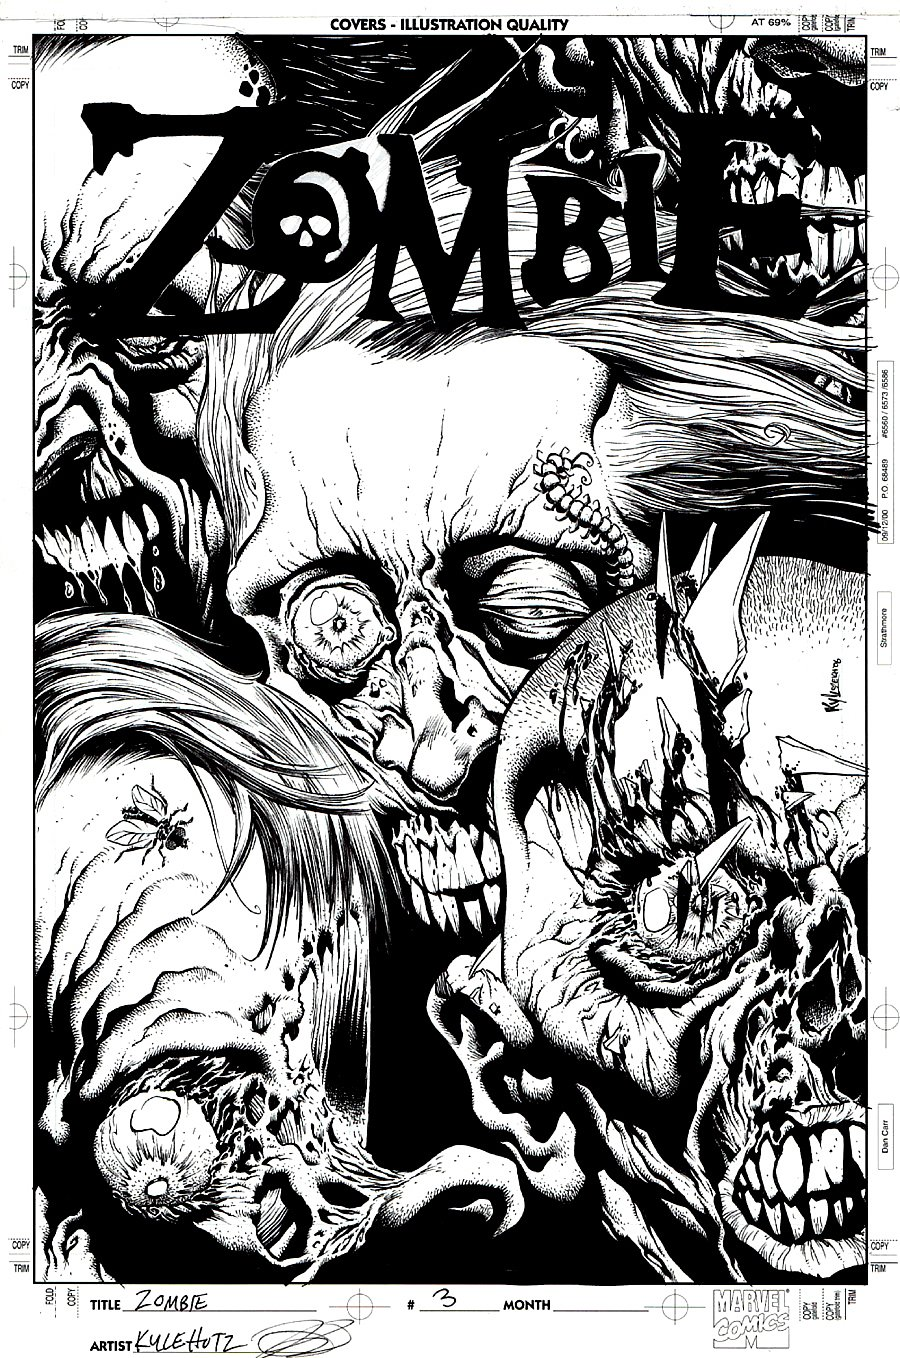 Zombie #2 Cover (2006)